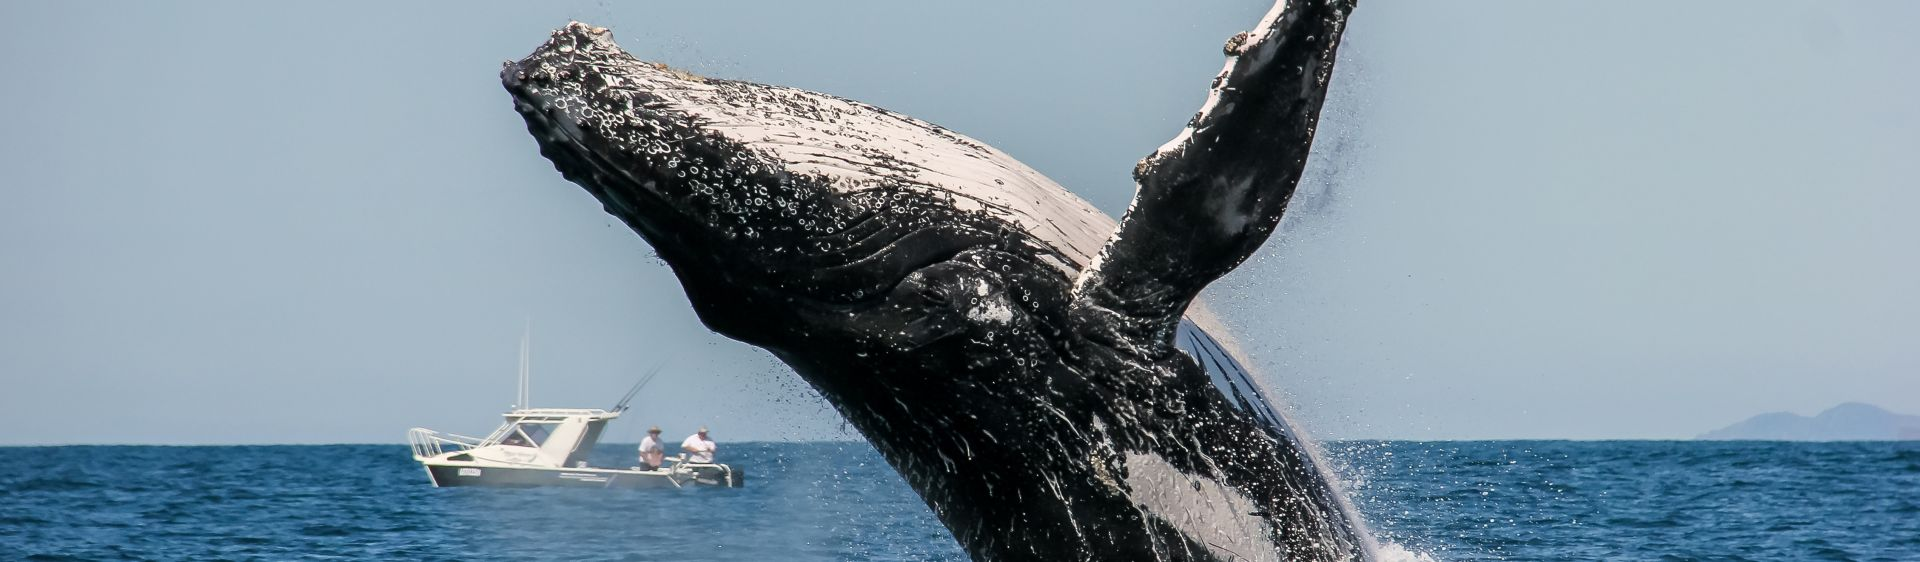 Humpback whale breaching in front of a fishing boat in Port Stephens, Australia